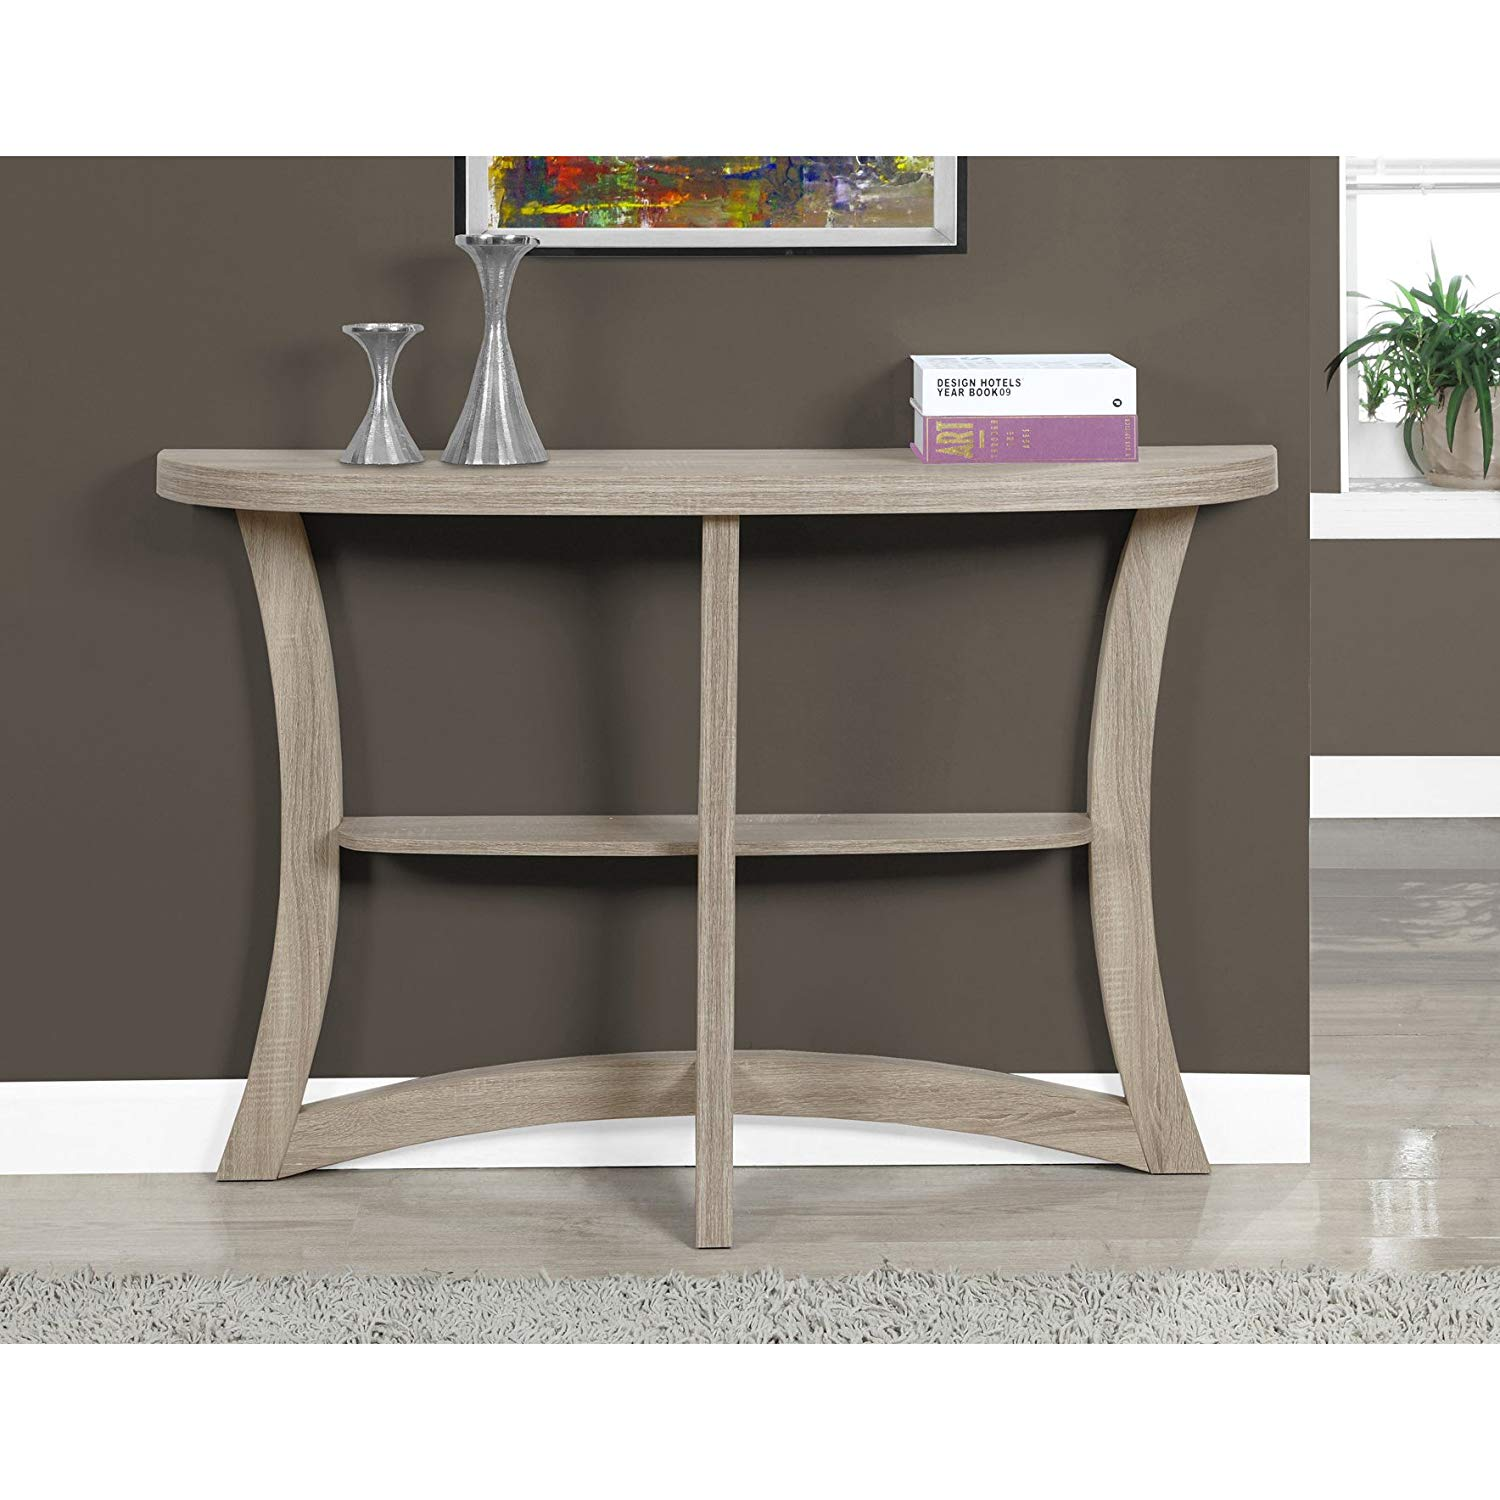 monarch two tier hall console accent table dark cappuccino taupe kitchen dining cabinet door knobs pier one ott counter height room chairs plexiglass coffee black piece set living